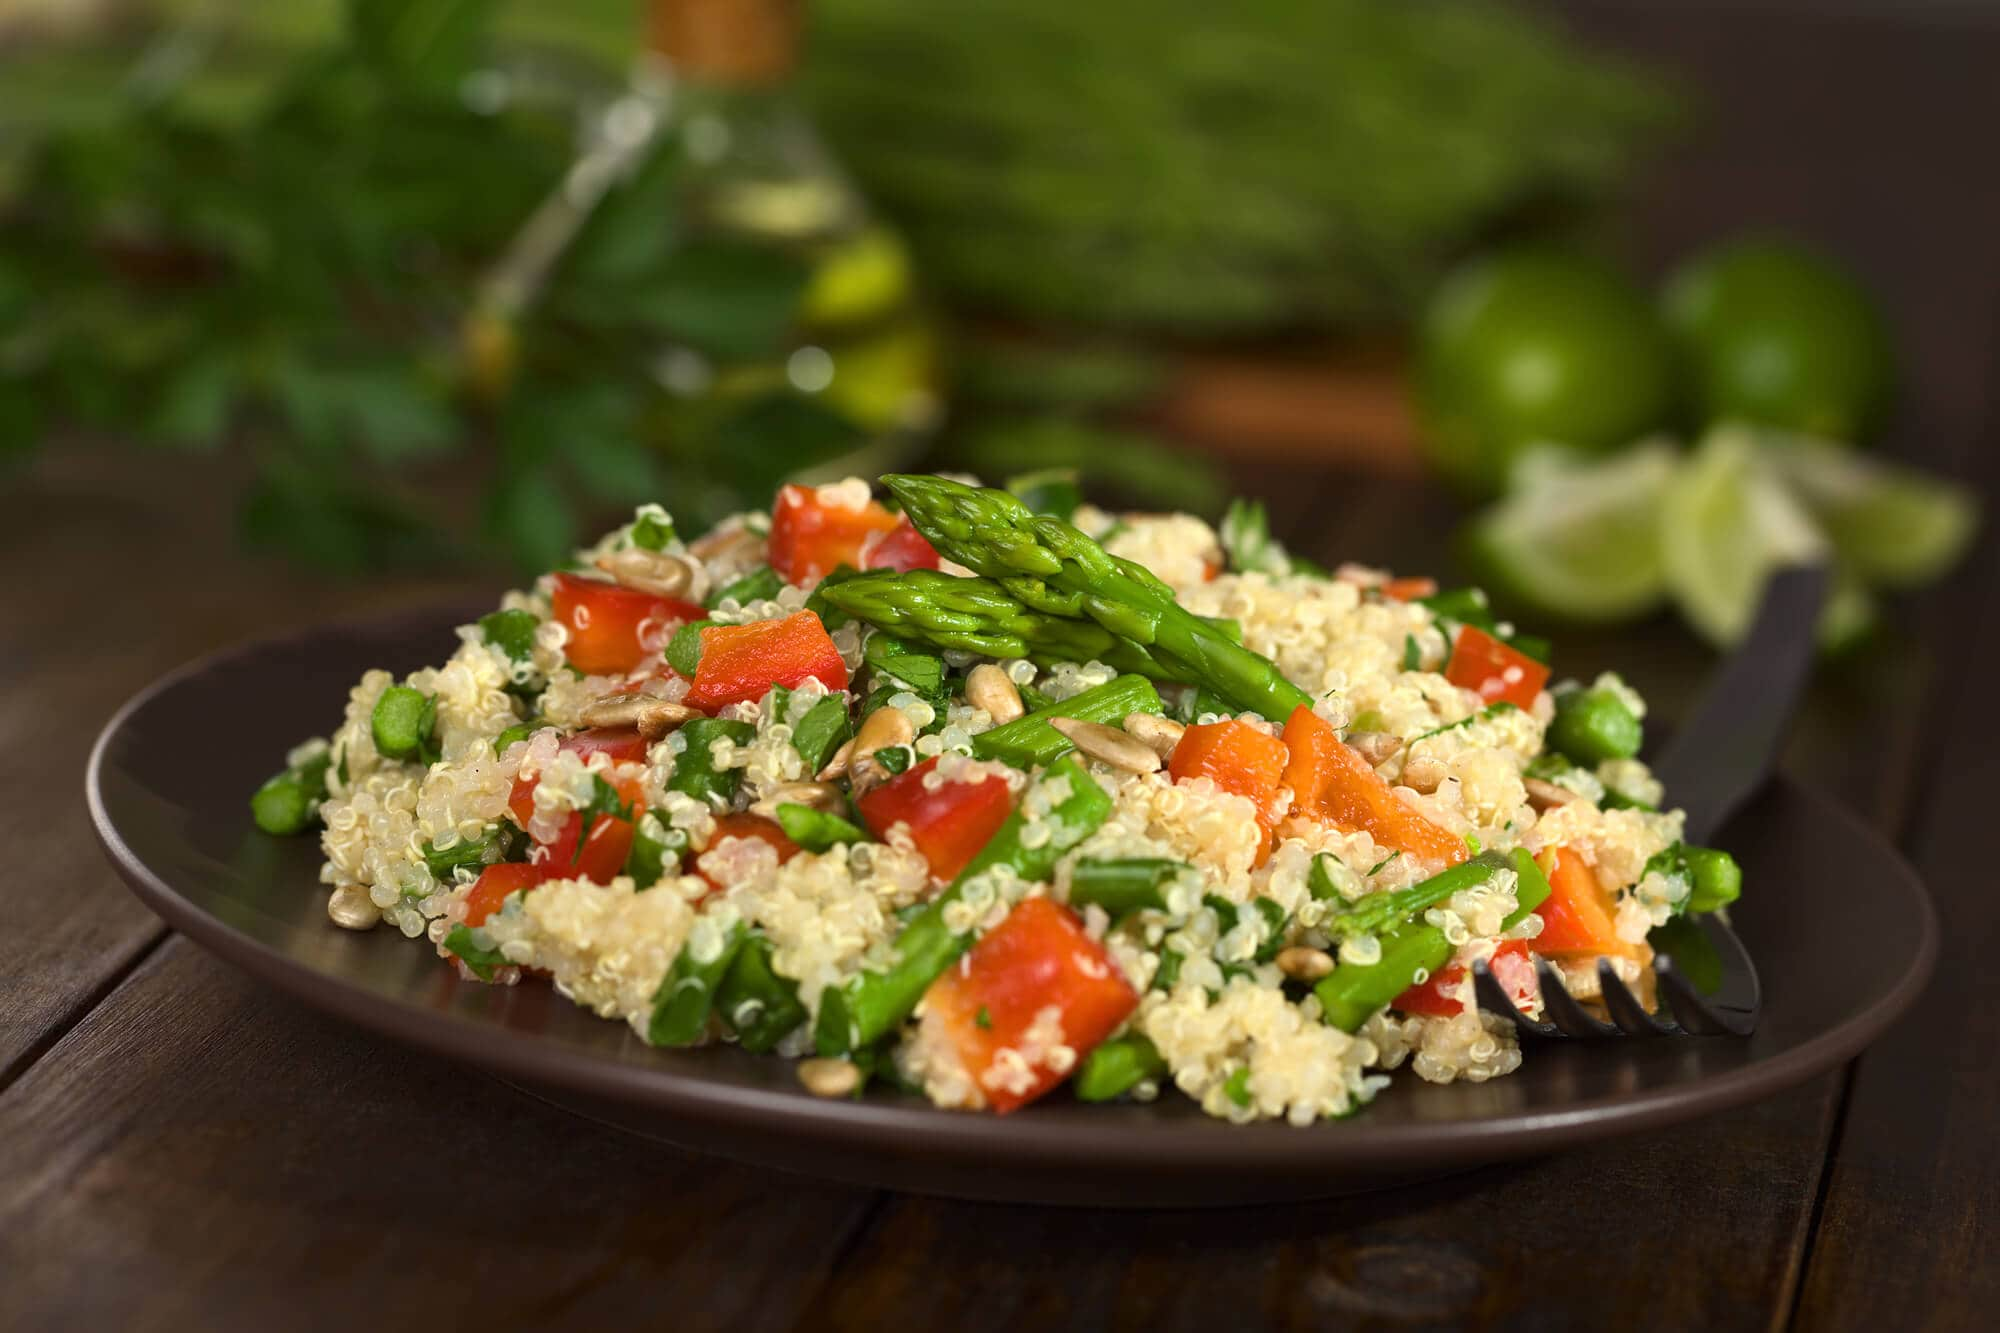 Vegetarian quinoa dish with green asparagus and red bell pepper, sprinkled with parsley and roasted sunflower seeds (Selective Focus, Focus on the asparagus heads on the dish)